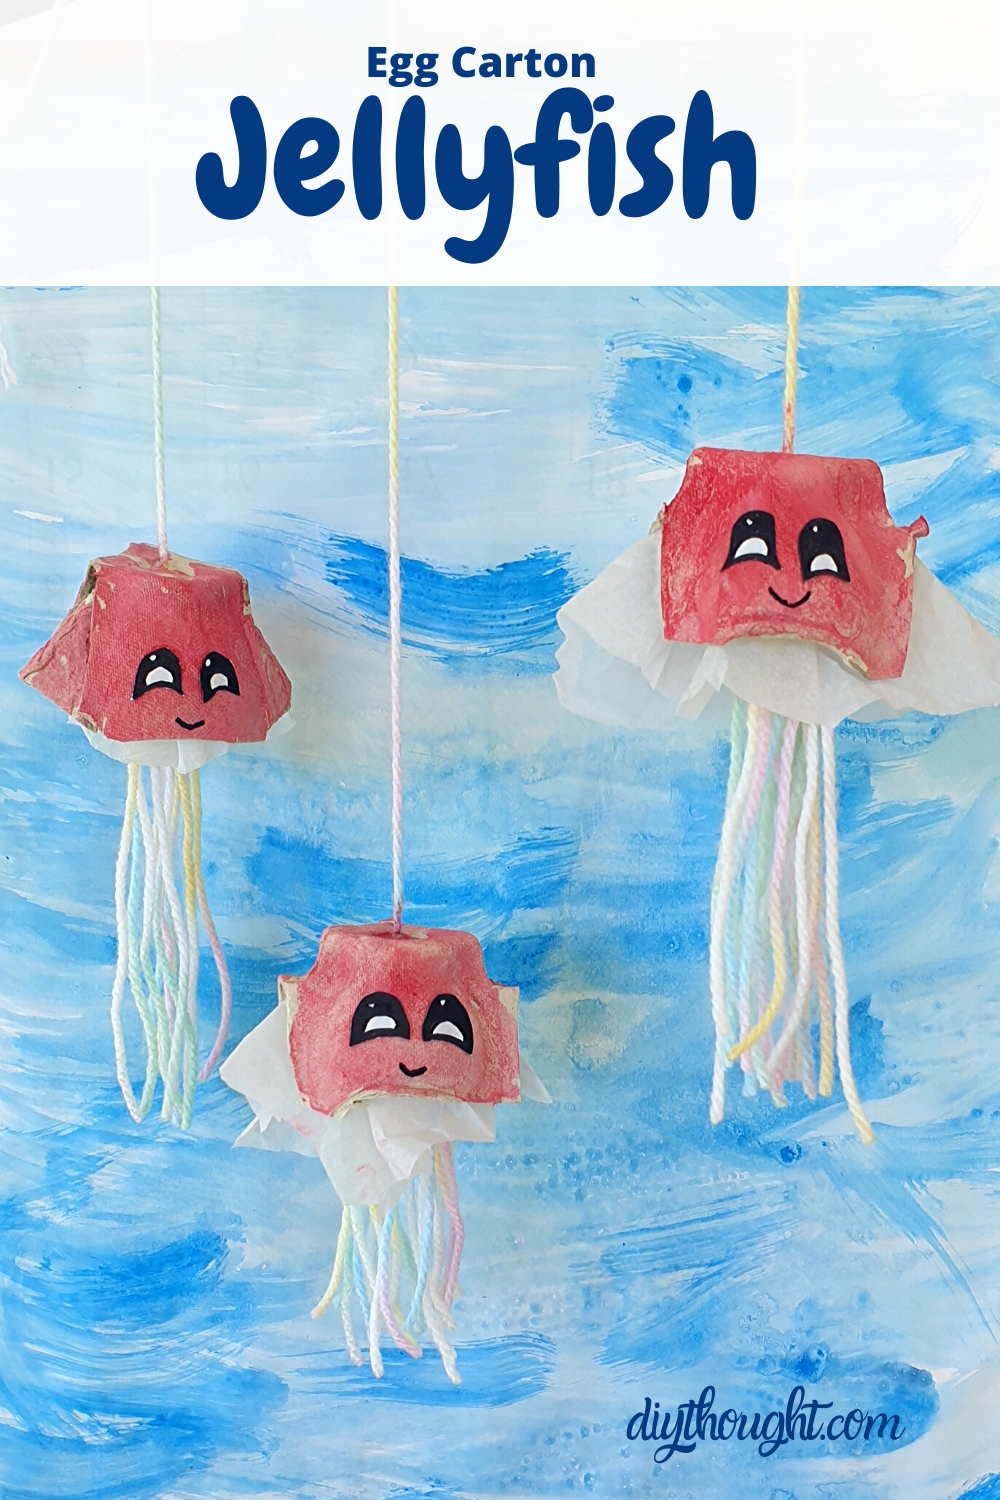 egg carton jellyfish craft